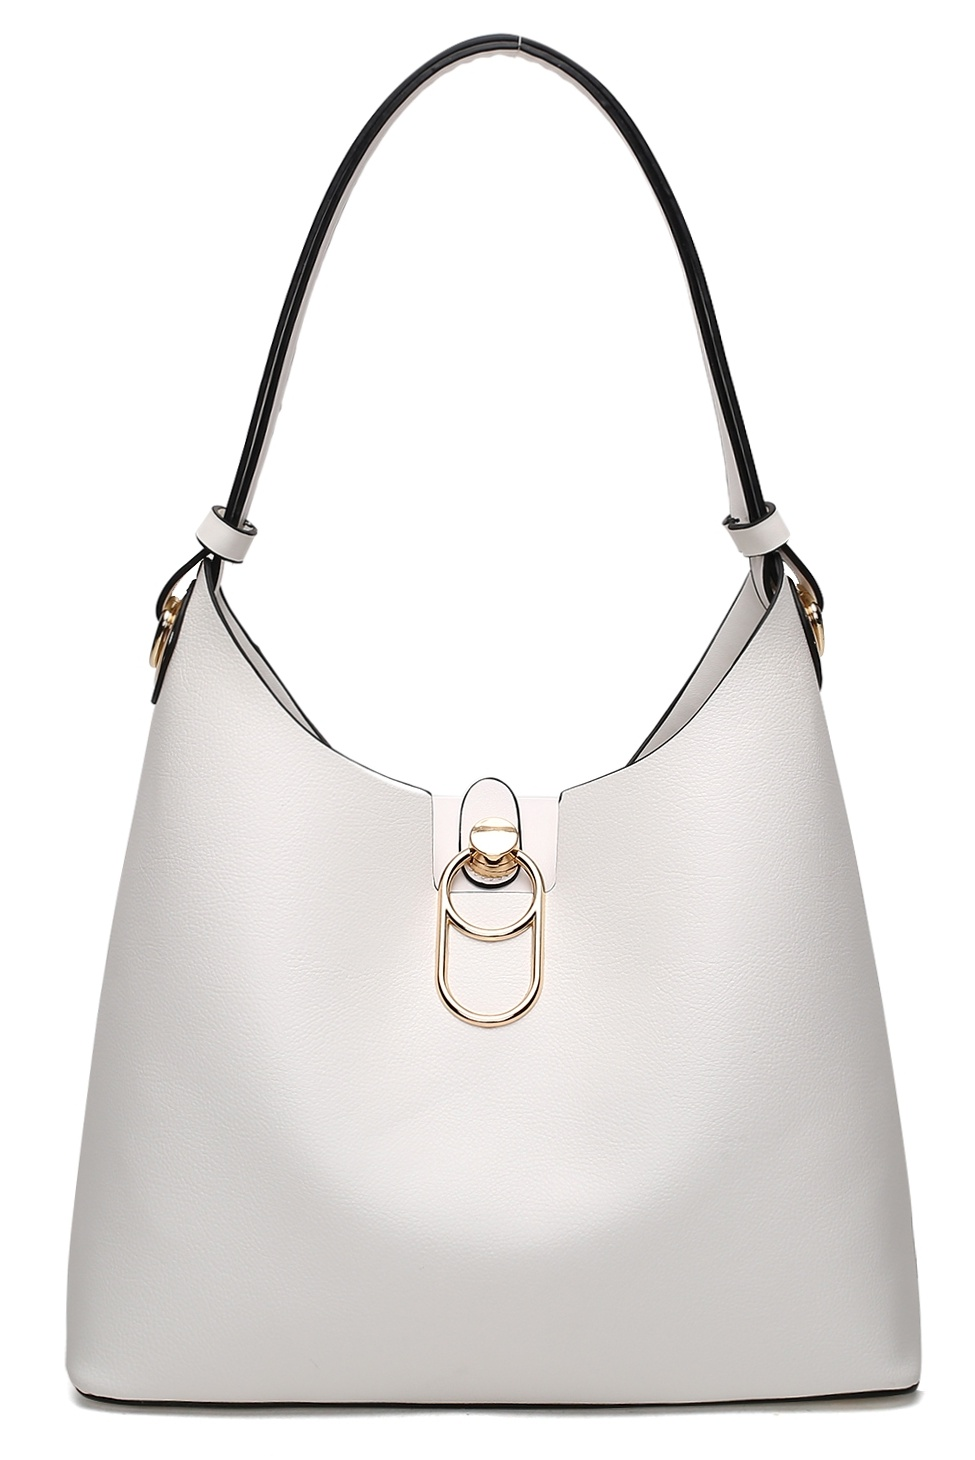 MKF Collection Soledad Hobo by Mia K. Farrow